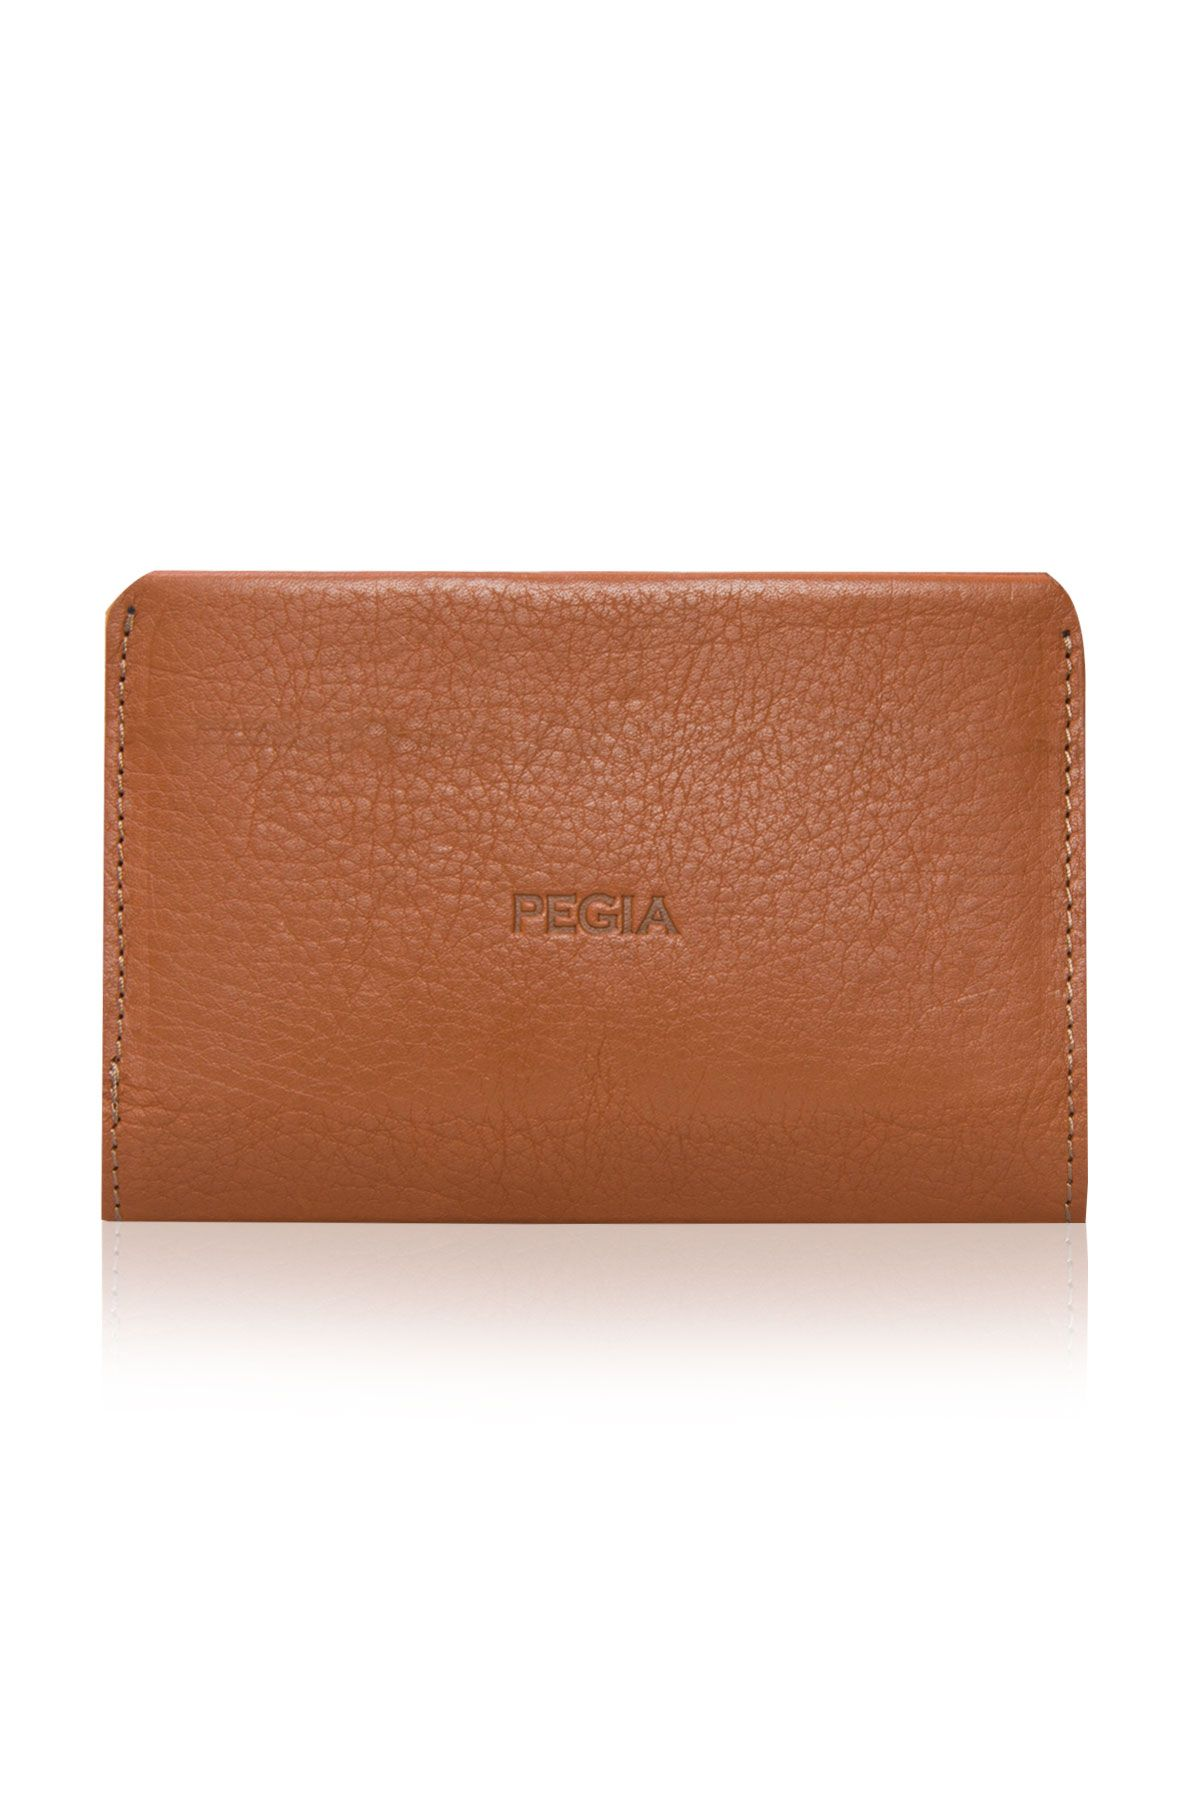 Pegia Genuine Leather Big Size Wallet 19CZ300 Ginger